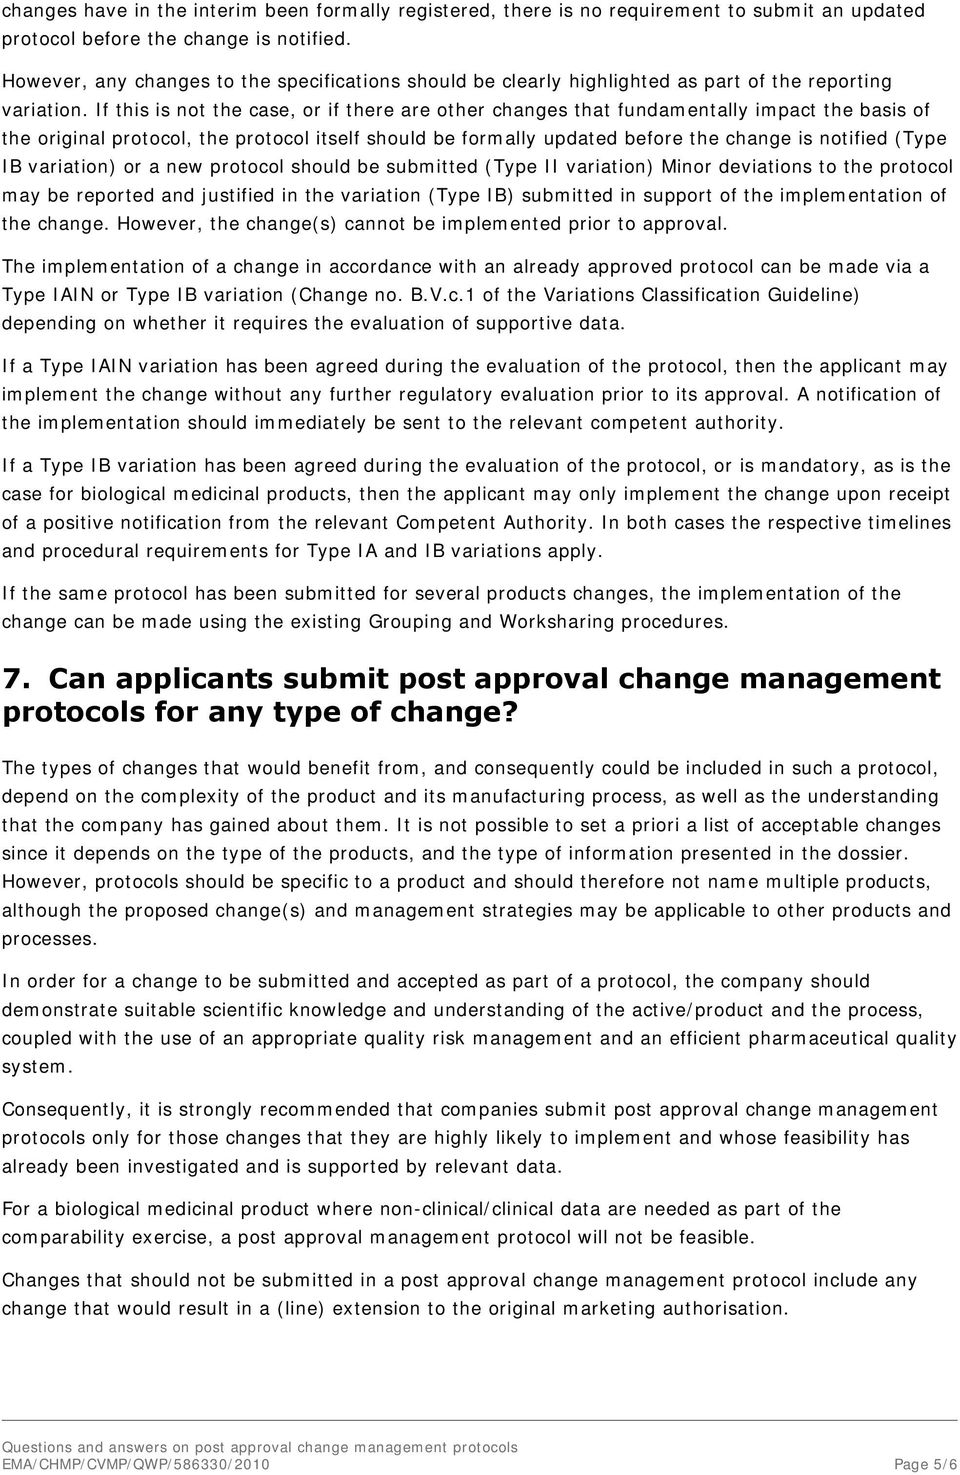 If this is not the case, or if there are other changes that fundamentally impact the basis of the original protocol, the protocol itself should be formally updated before the change is notified (Type